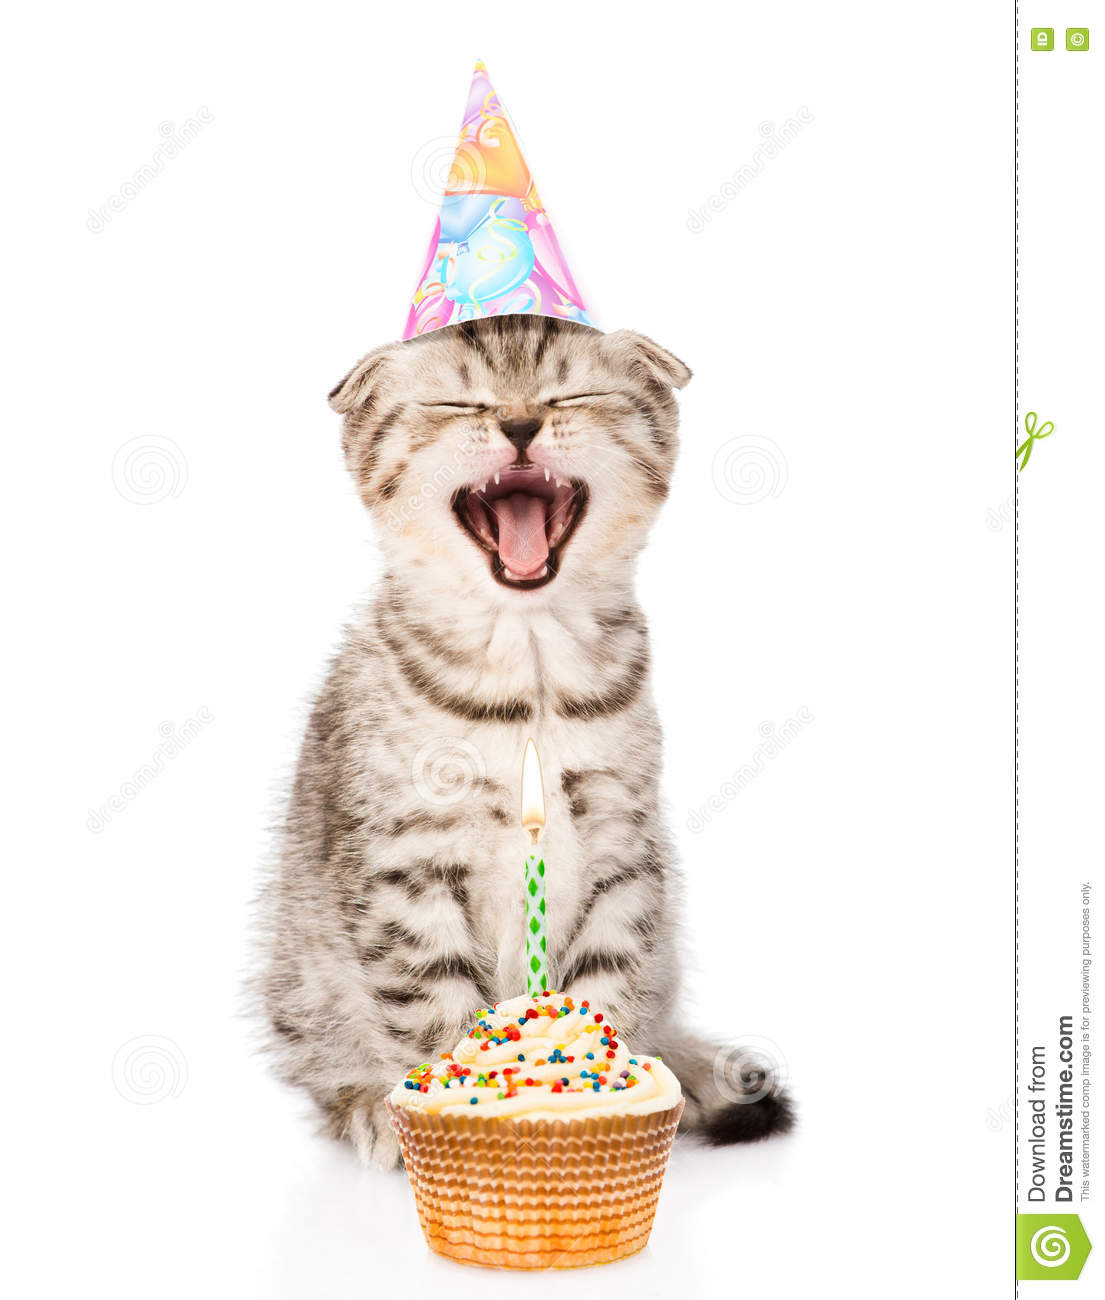 Pictures Of A Kitten With A Birthday Cake